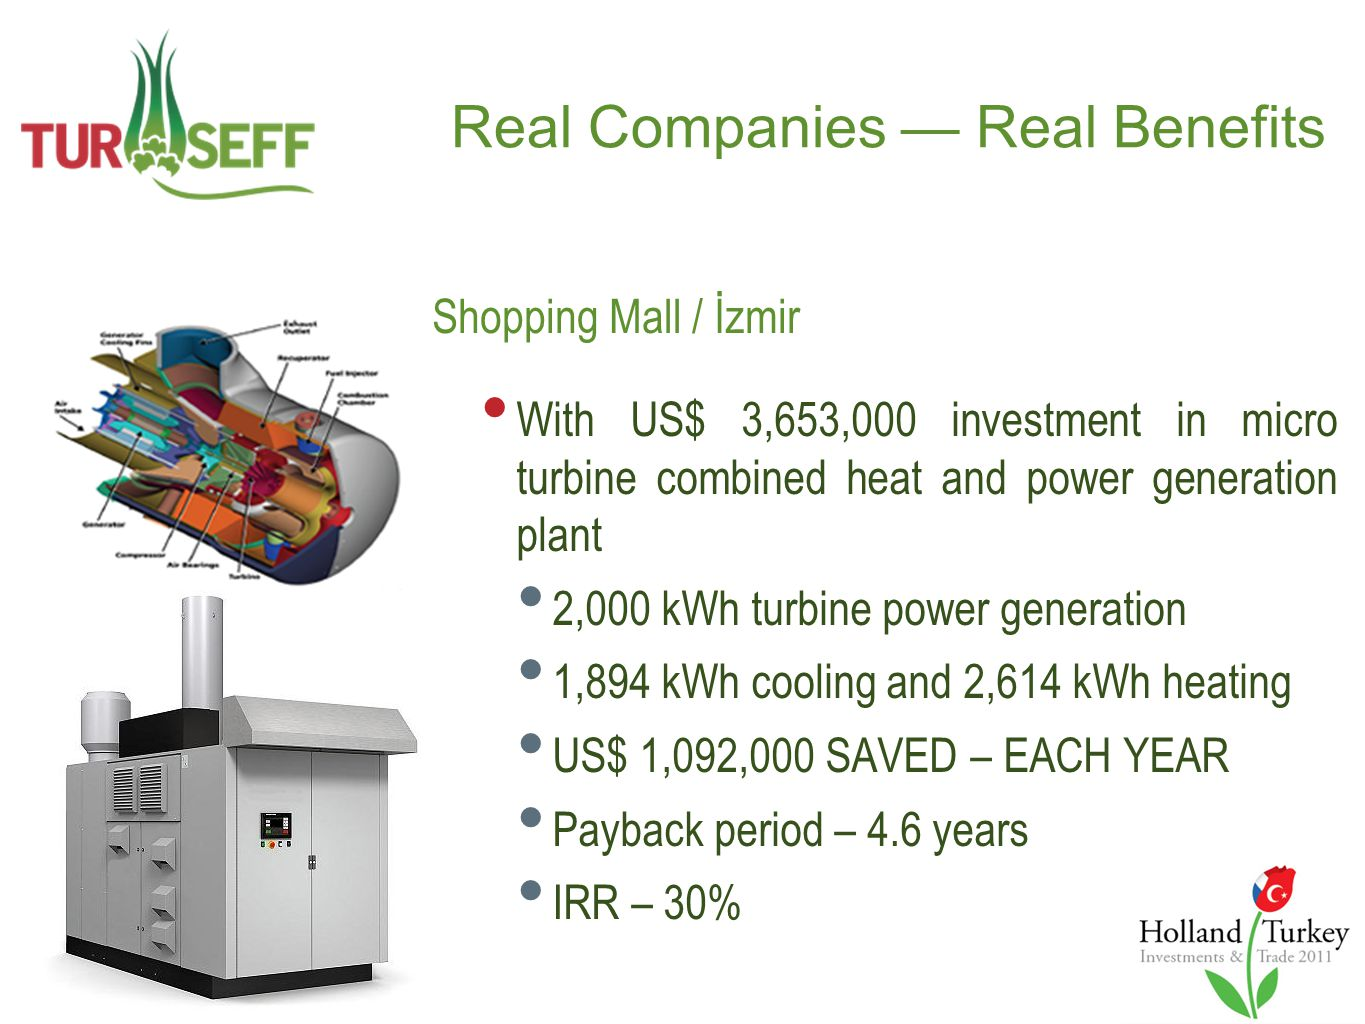 Shopping Mall / İzmir With US$ 3,653,000 investment in micro turbine combined heat and power generation plant 2,000 kWh turbine power generation 1,894 kWh cooling and 2,614 kWh heating US$ 1,092,000 SAVED – EACH YEAR Payback period – 4.6 years IRR – 30%